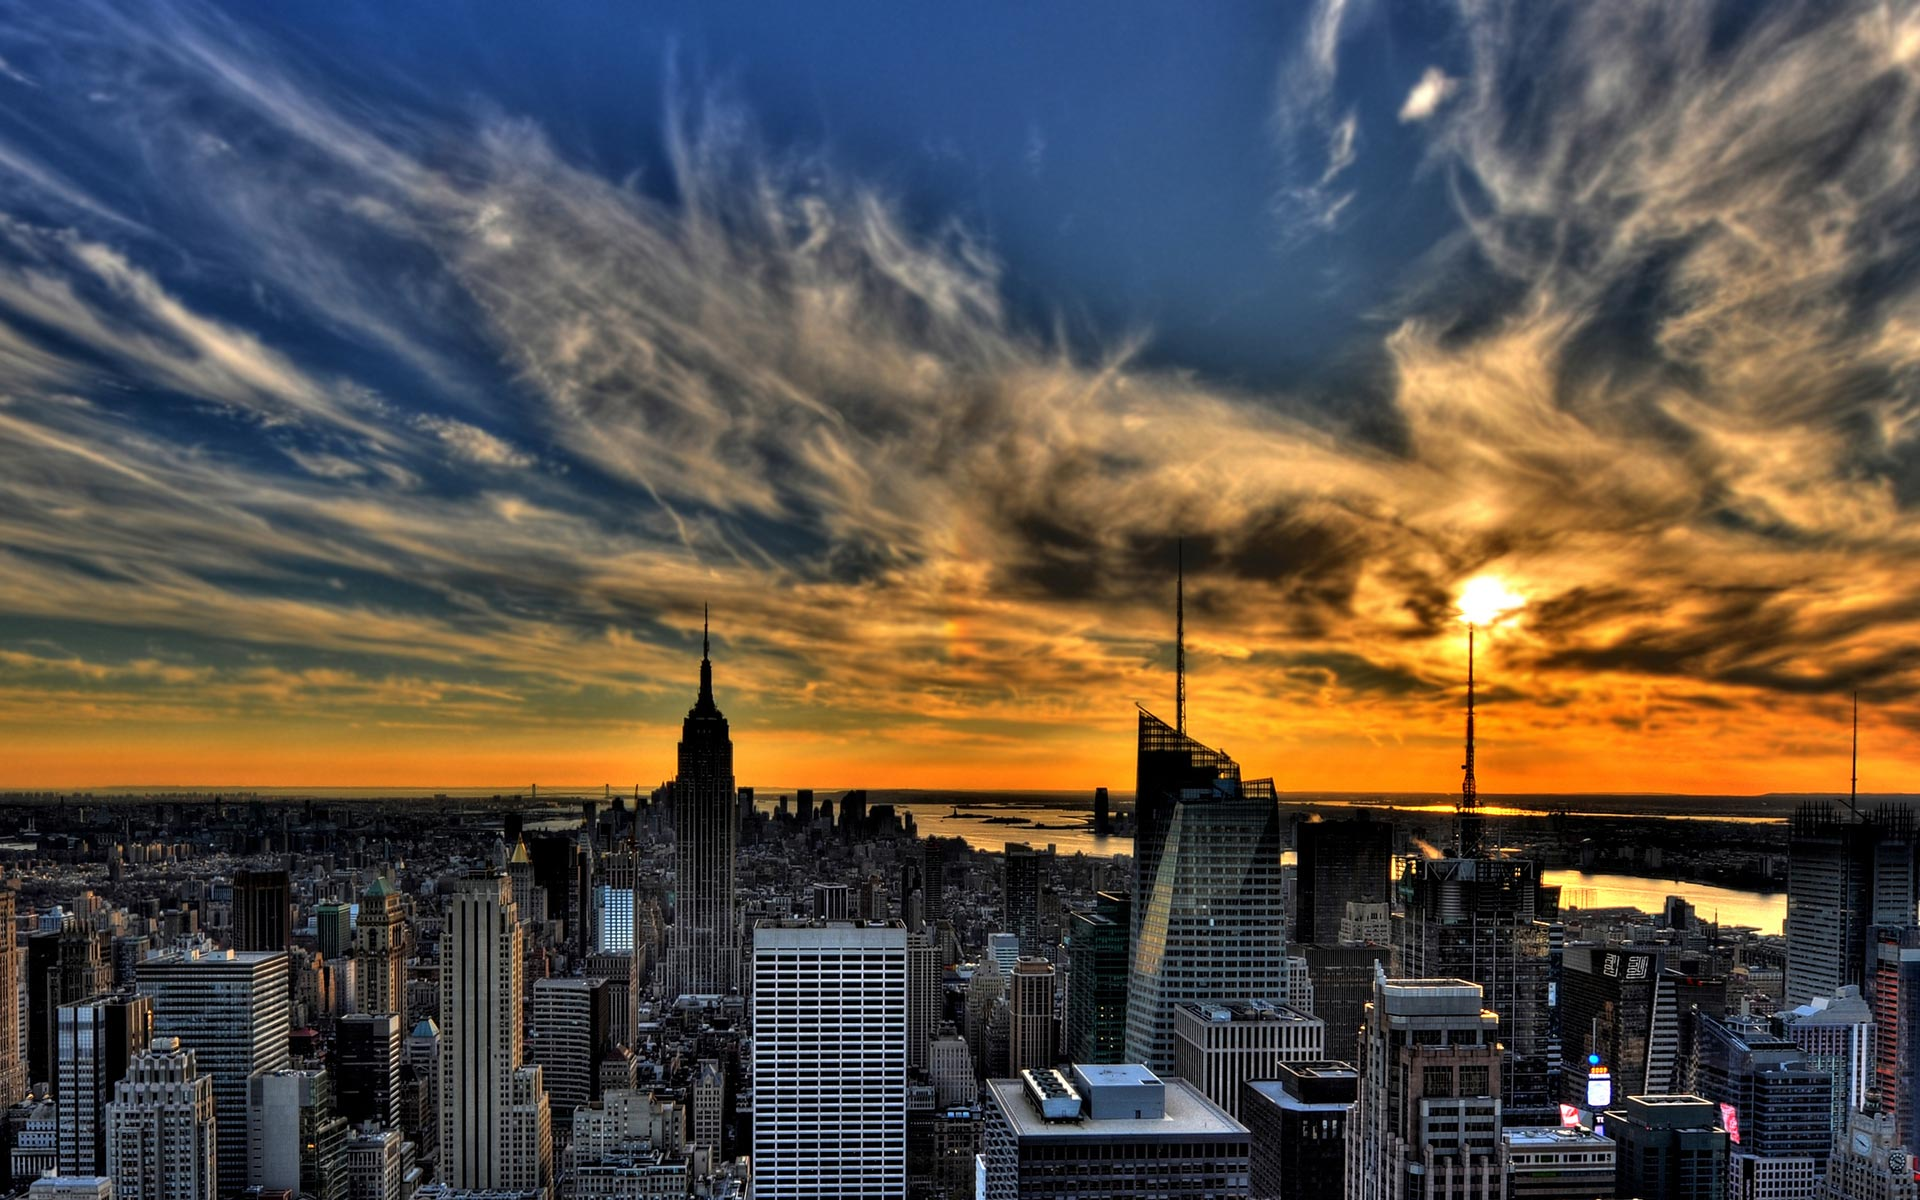 Sunset in new york 1920 x 1200 download close